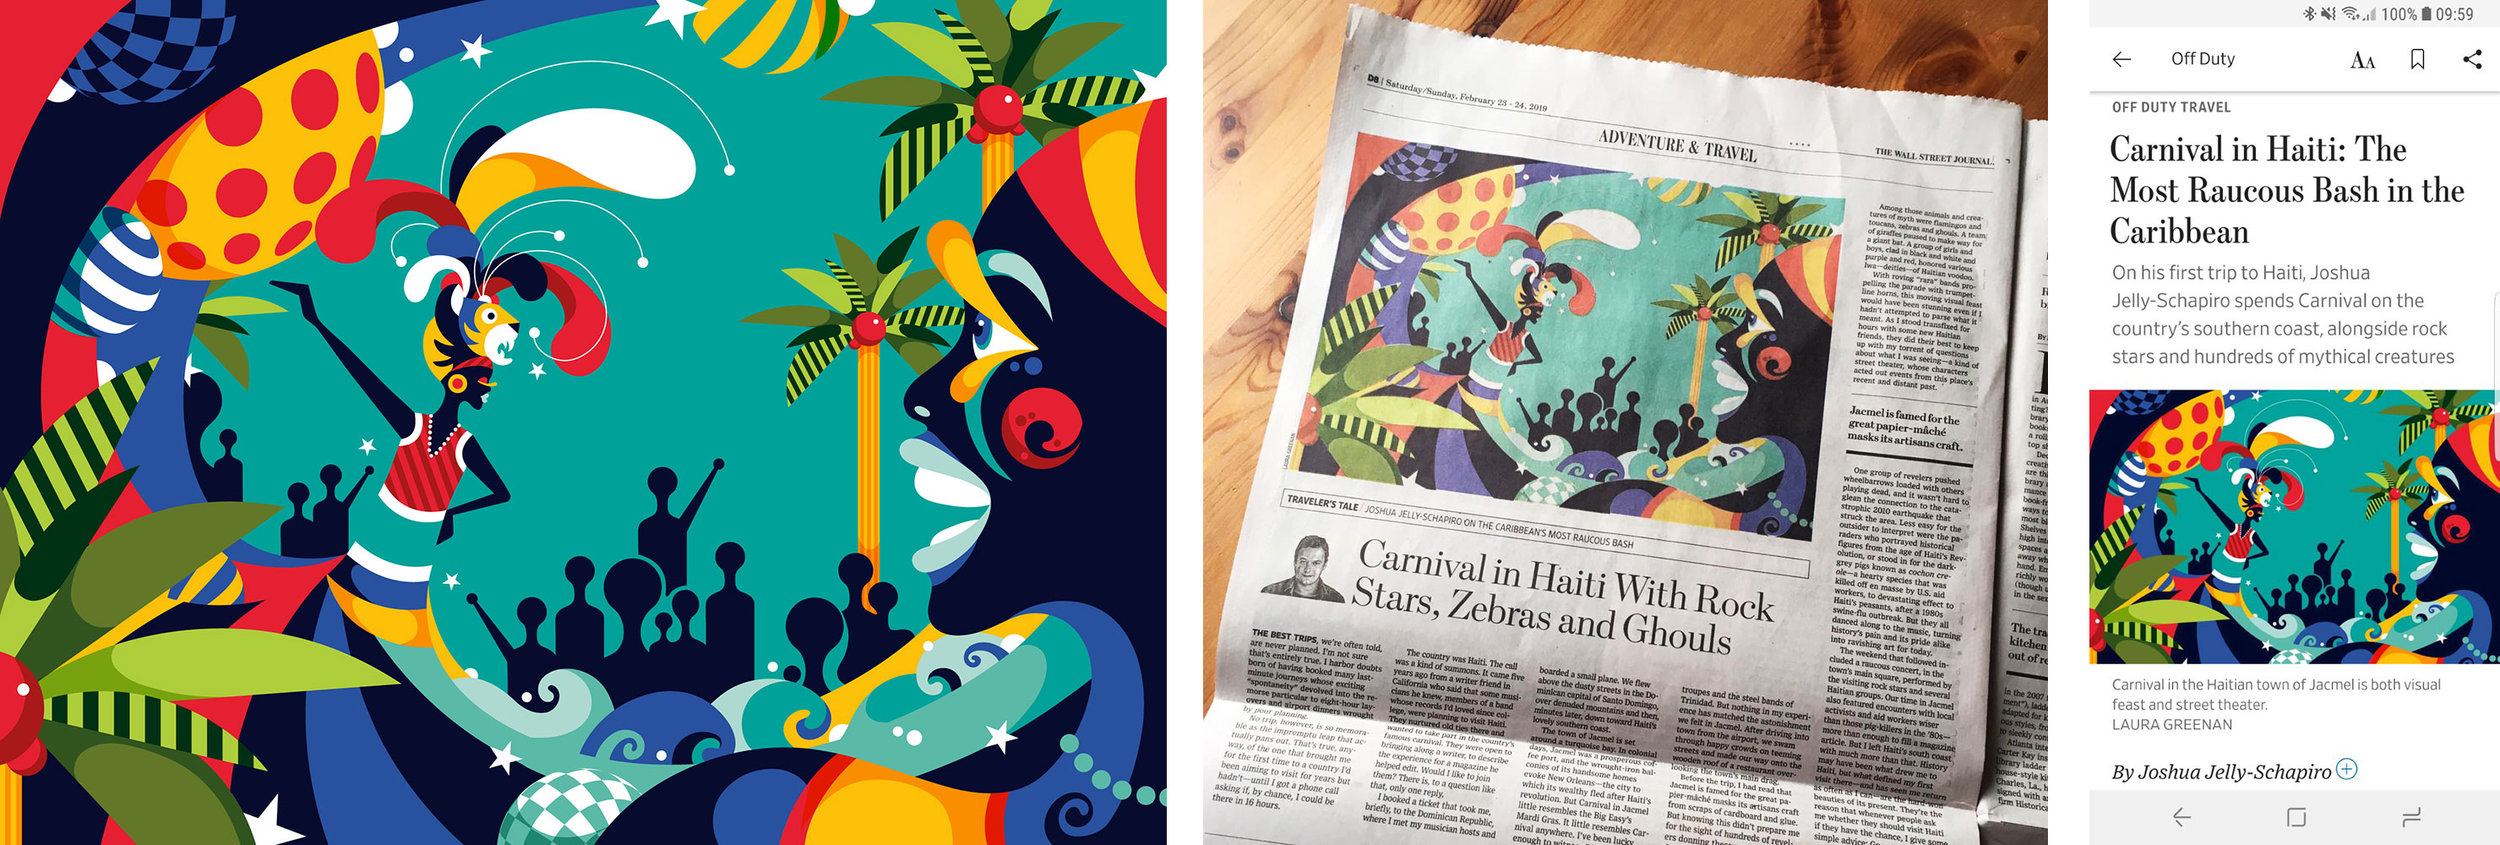 Commission for The Wall Street Journal - Haiti Carnival - Editorial